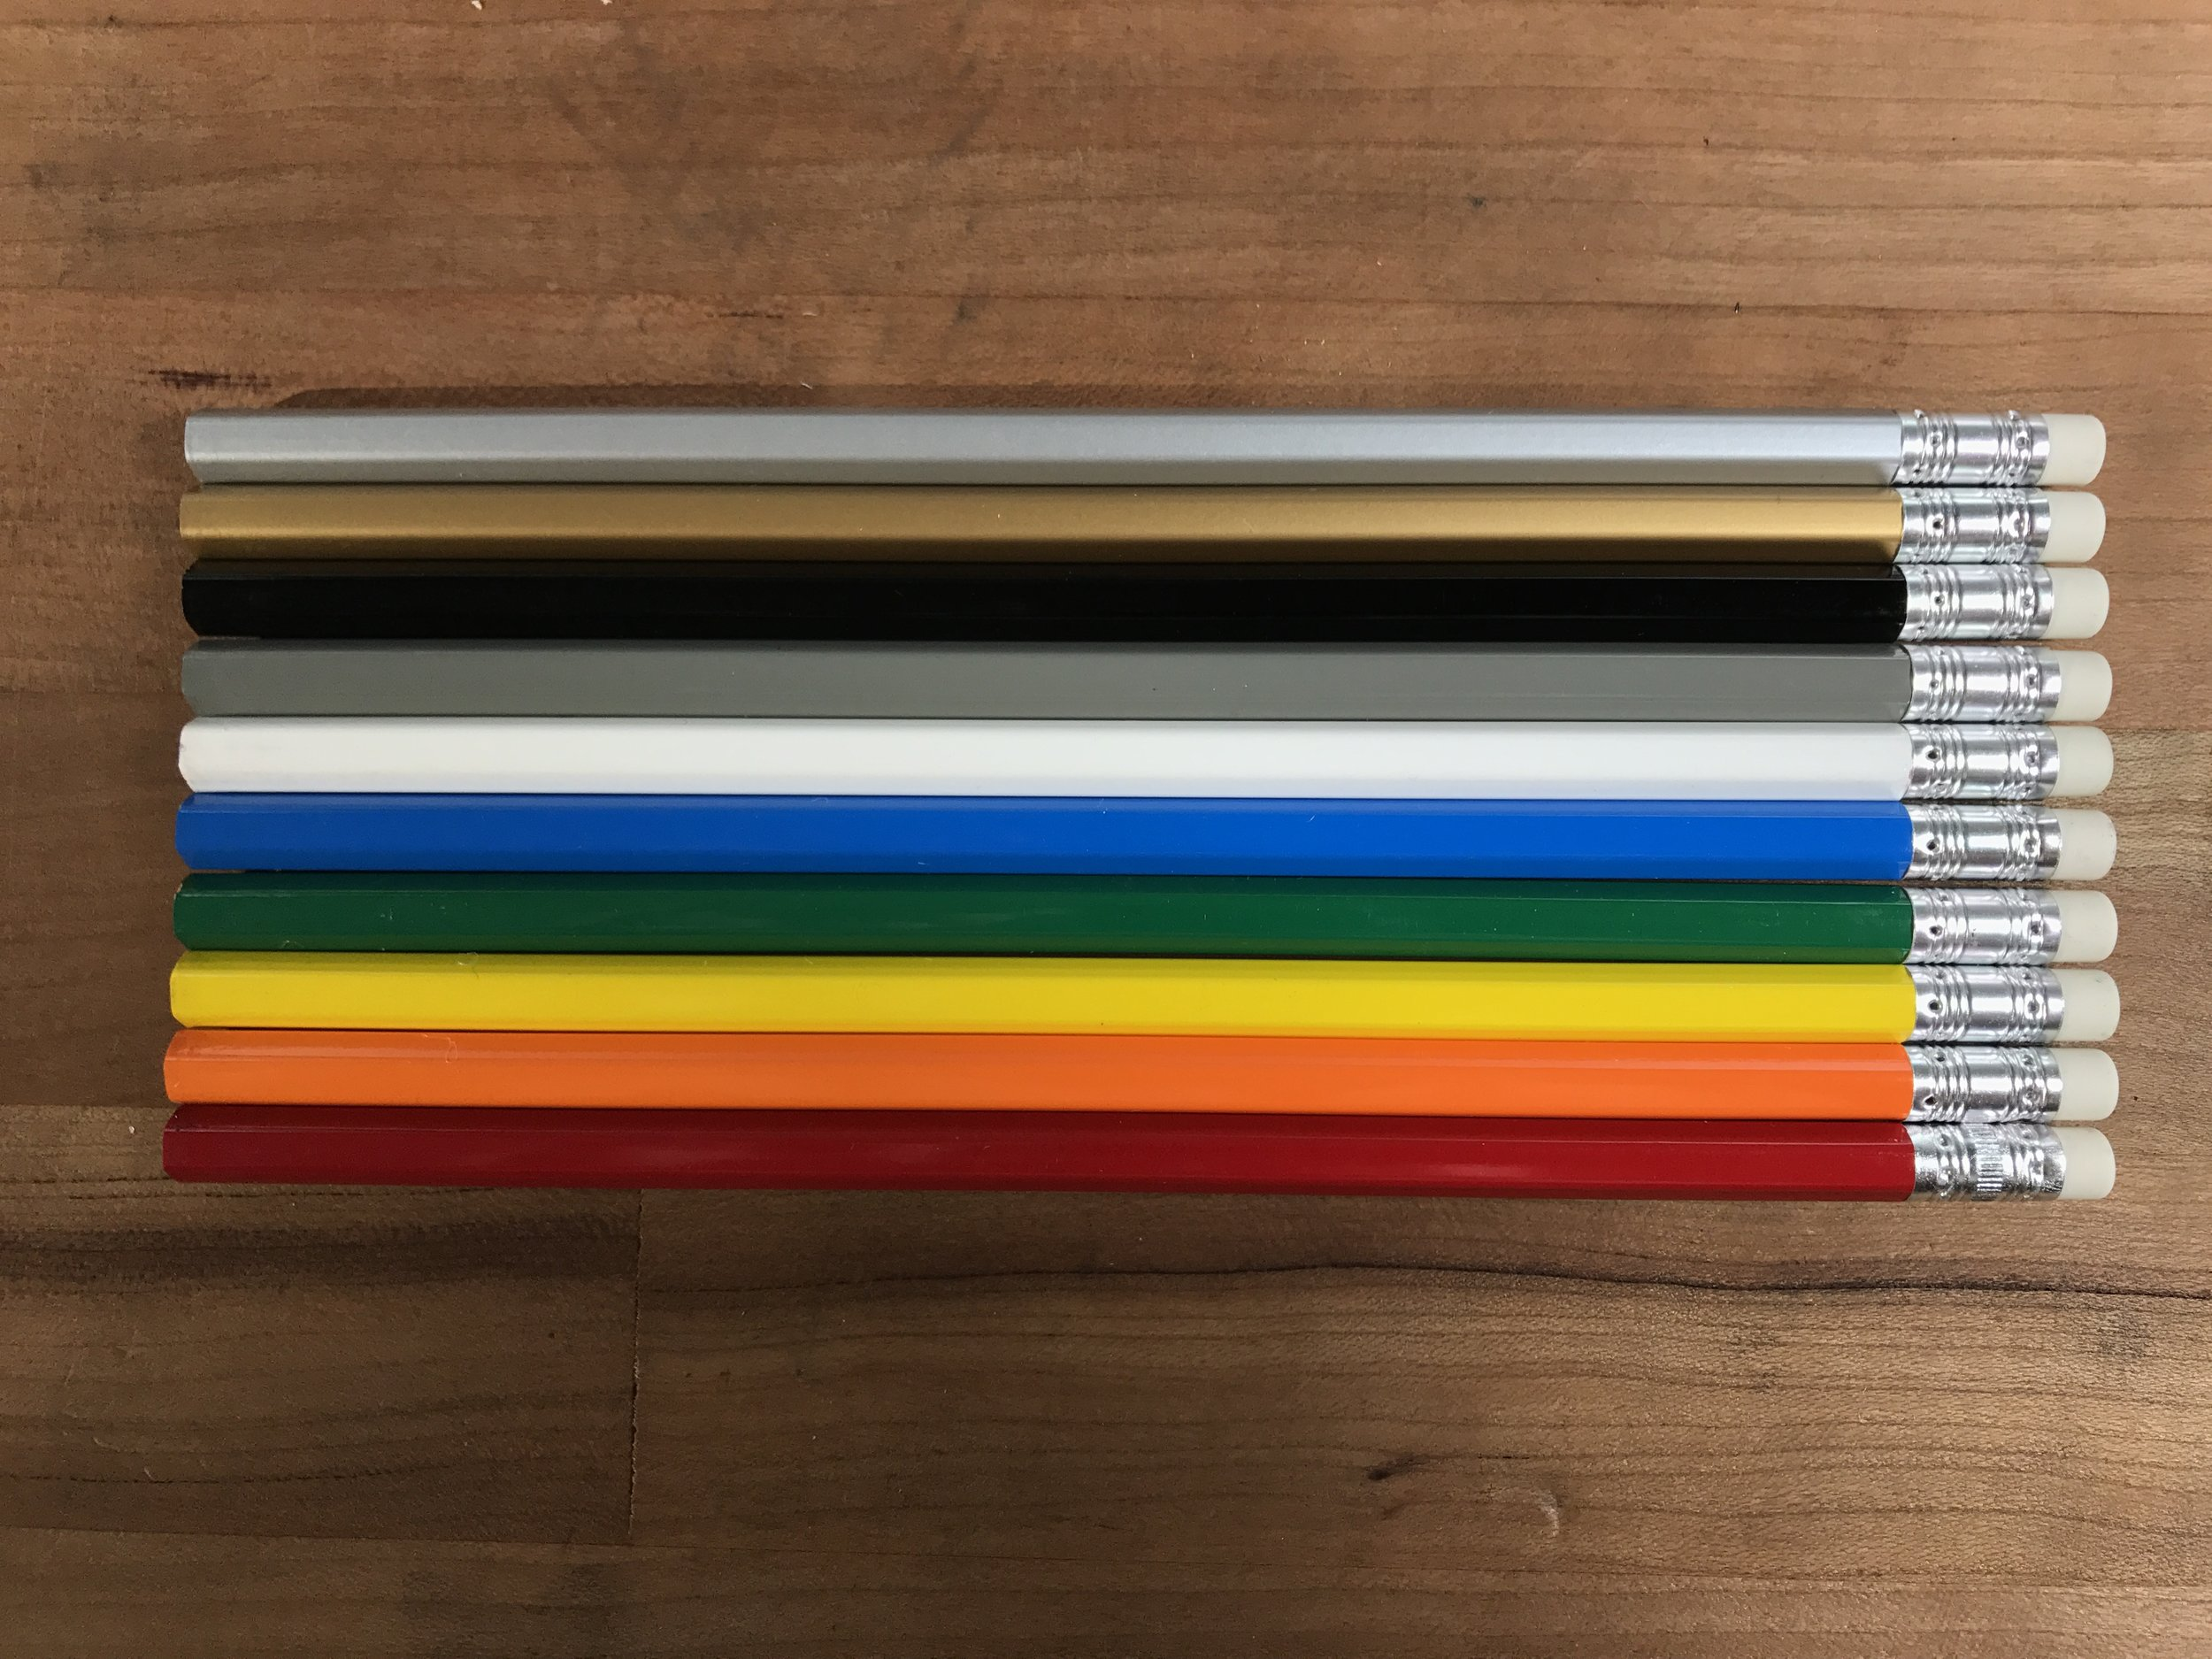 All colors of the primary rainbow.